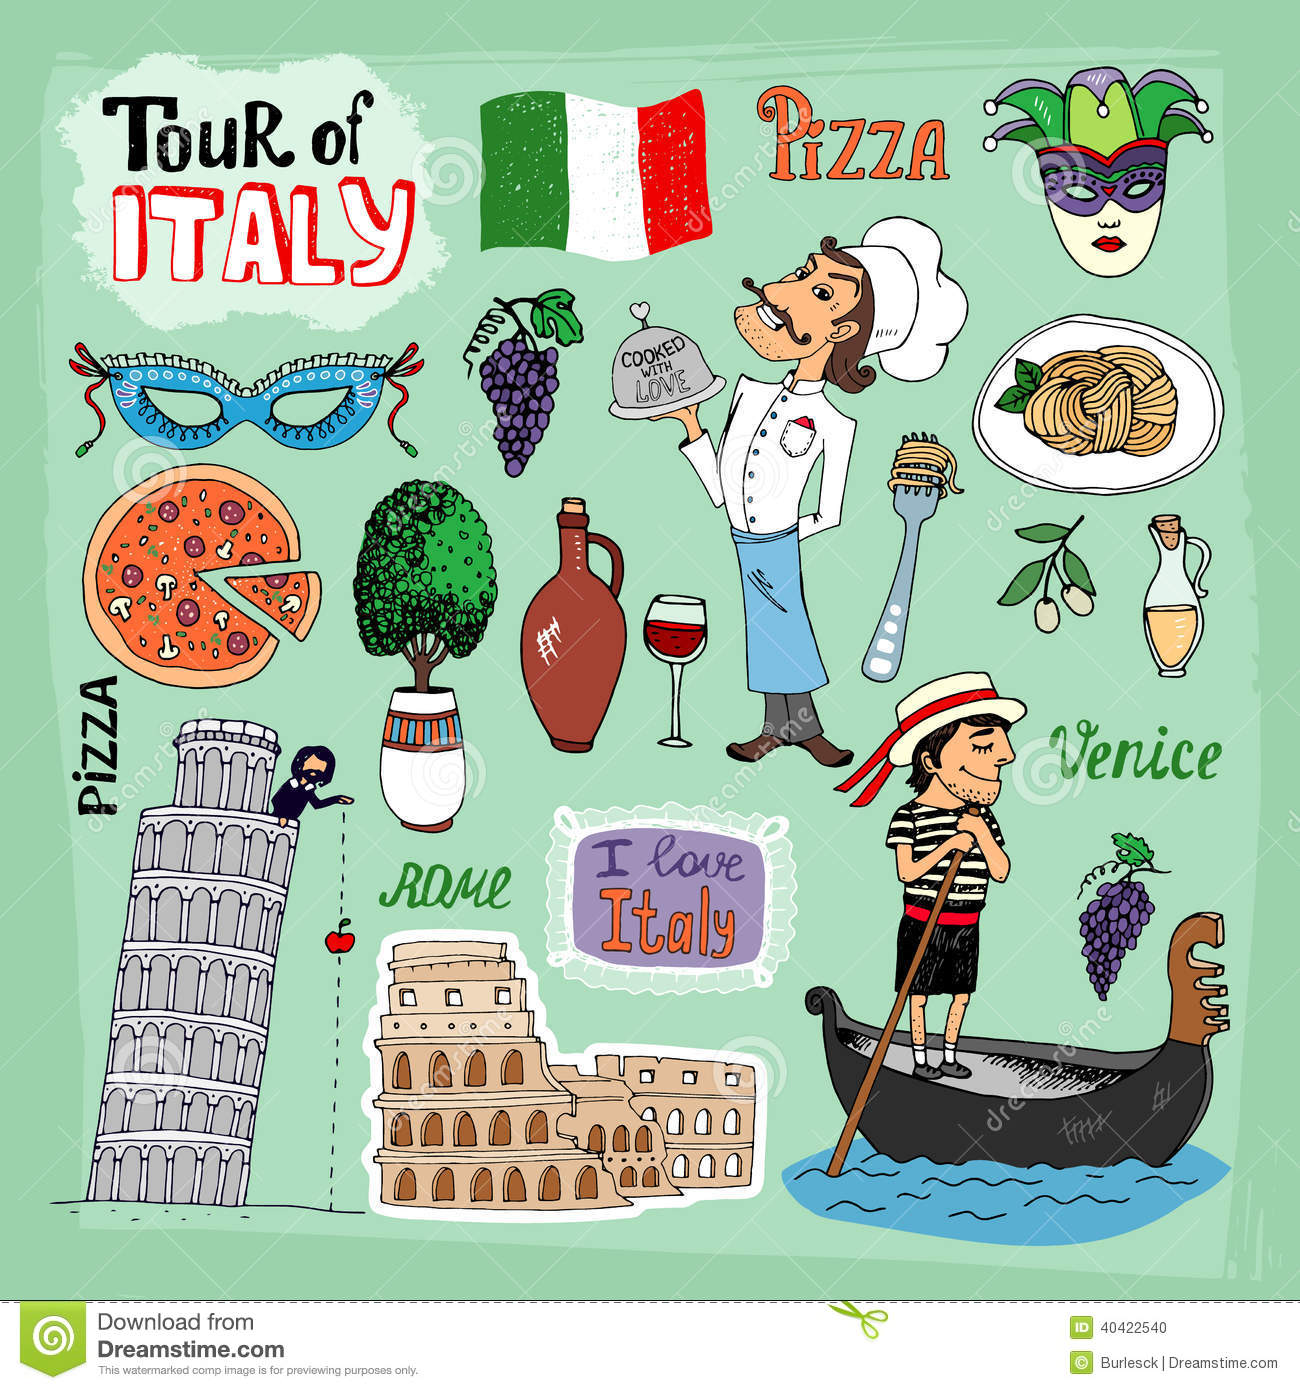 Italy Clipart Travel Clipart The Tower of Pisa Personal /& Commercial Use Rome Clip Art SALE Roman Colosseum Wine Pasta